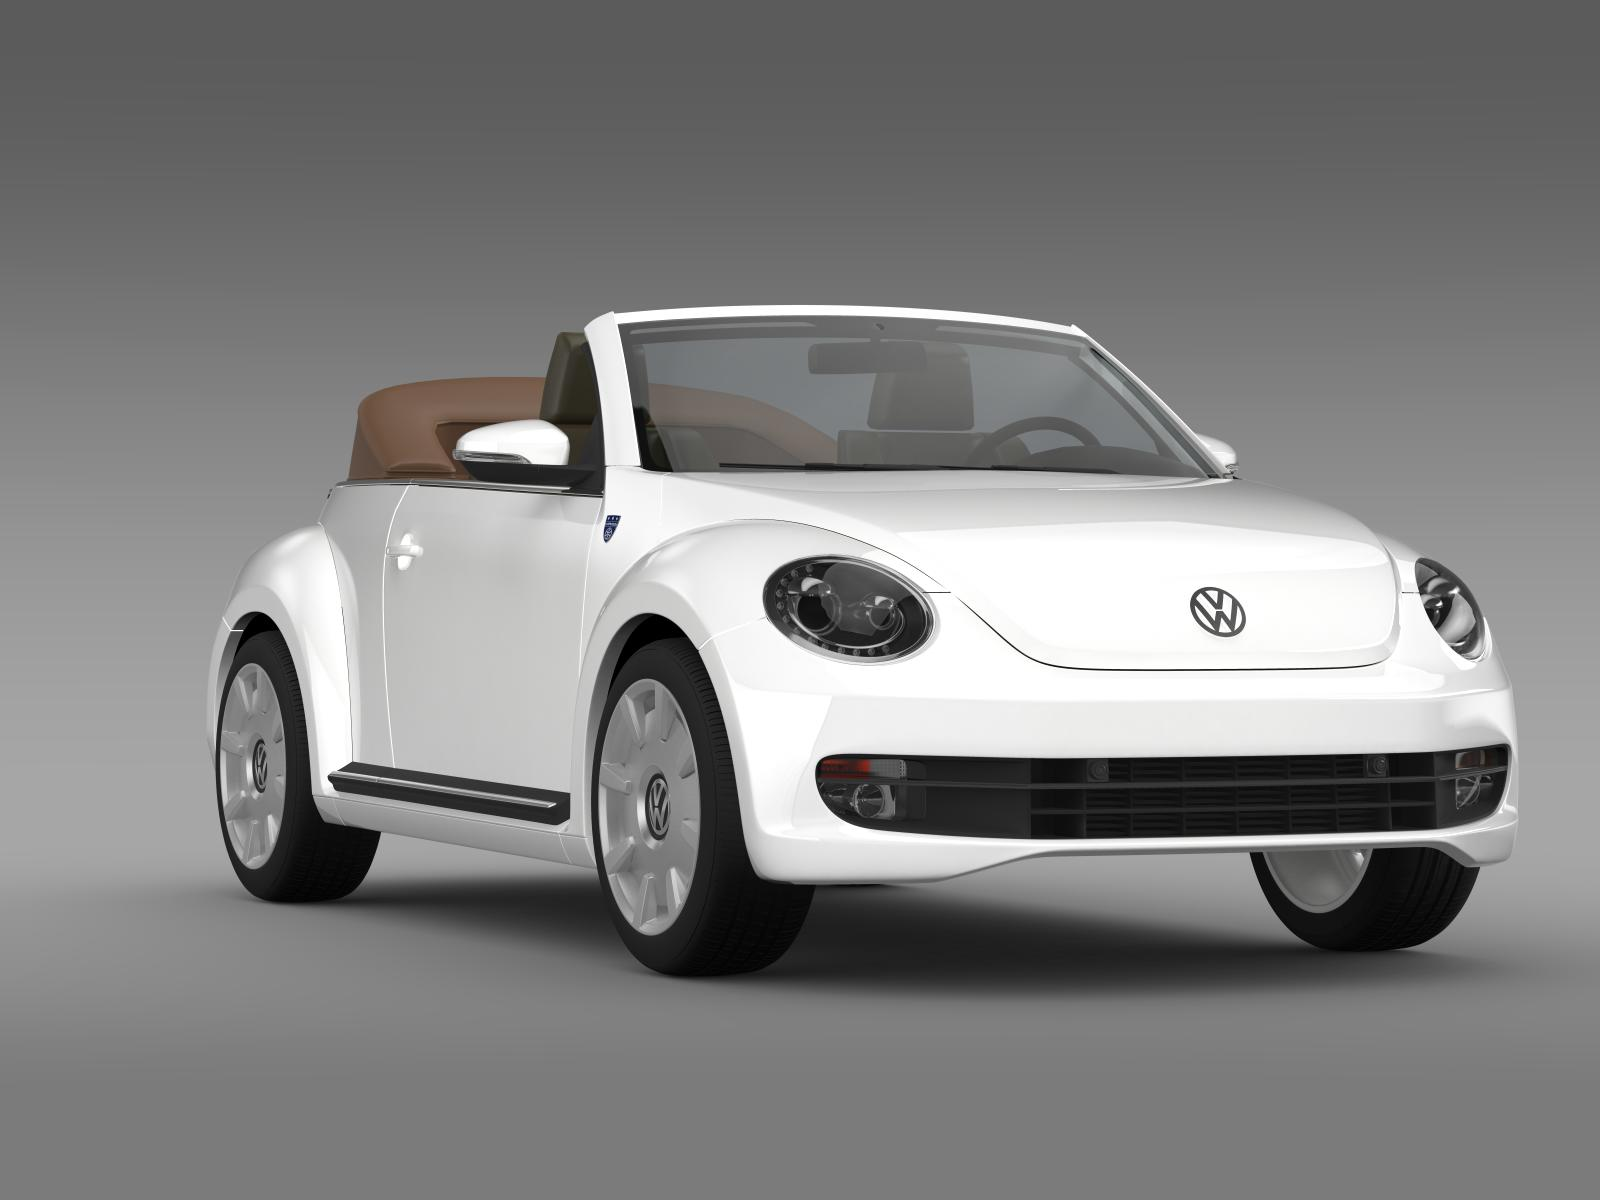 karmann beetle cabrio 2014 3d model buy karmann beetle cabrio 2014 3d model flatpyramid. Black Bedroom Furniture Sets. Home Design Ideas